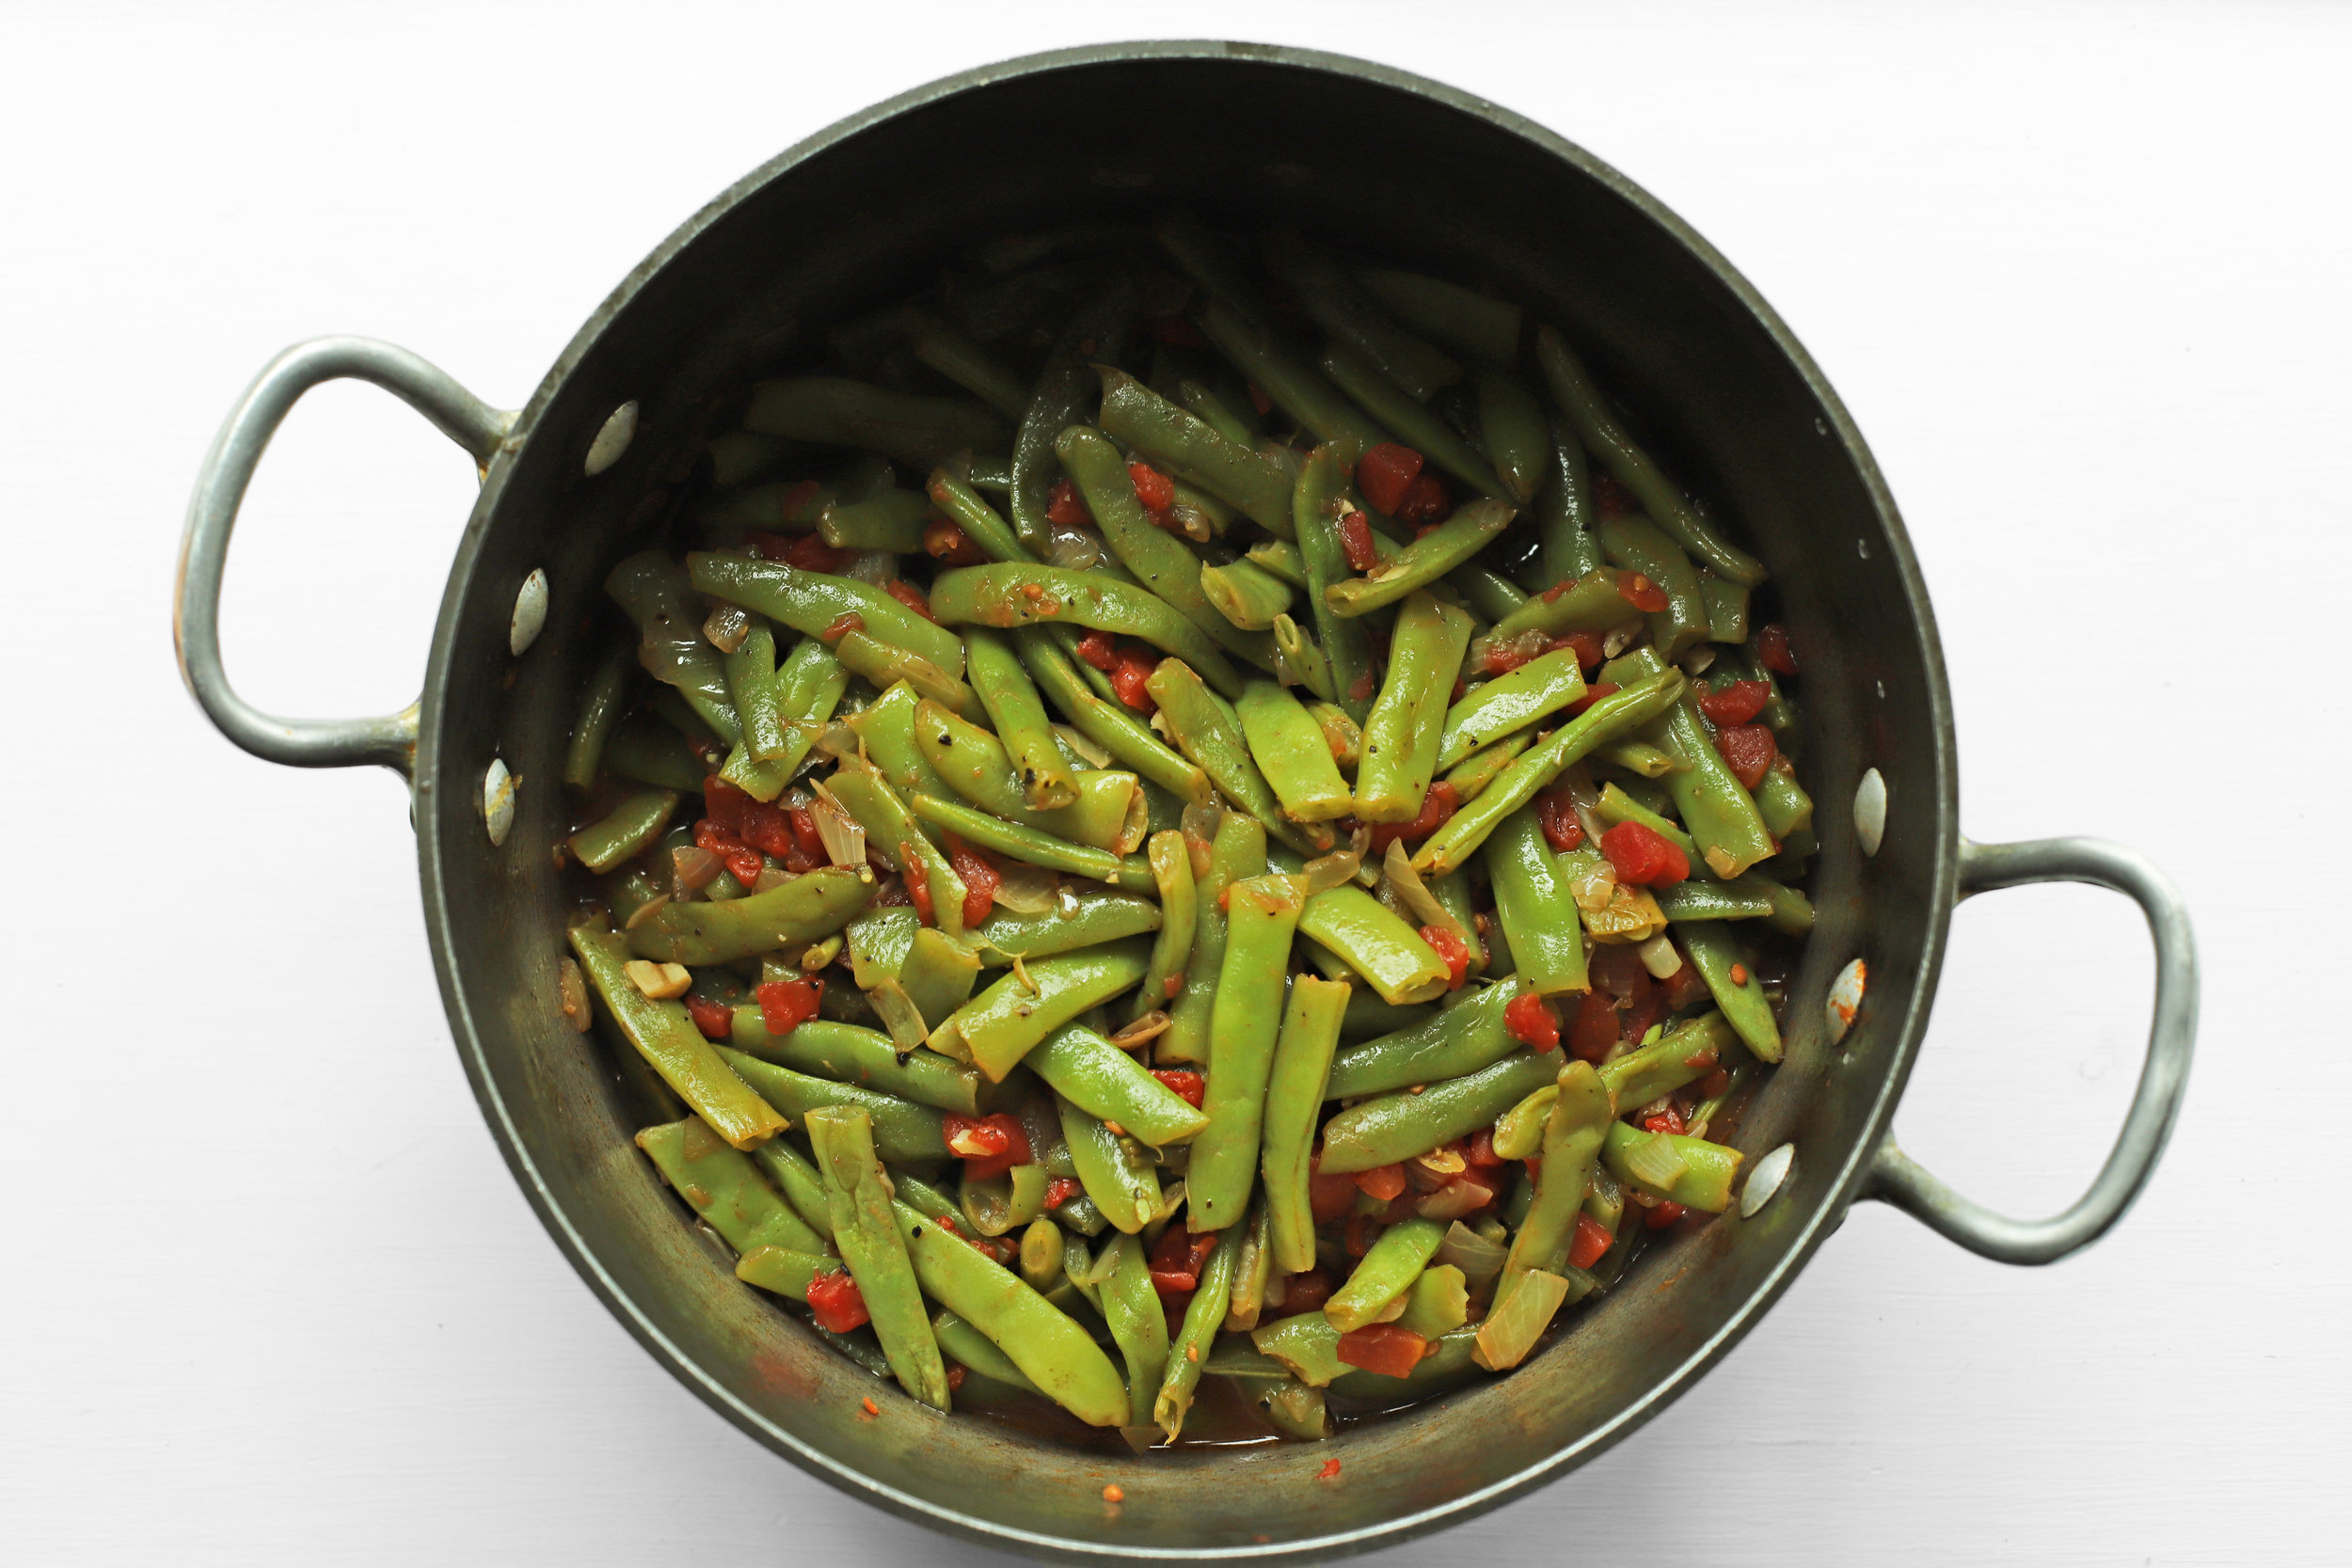 green beans steam-fried in olive oil